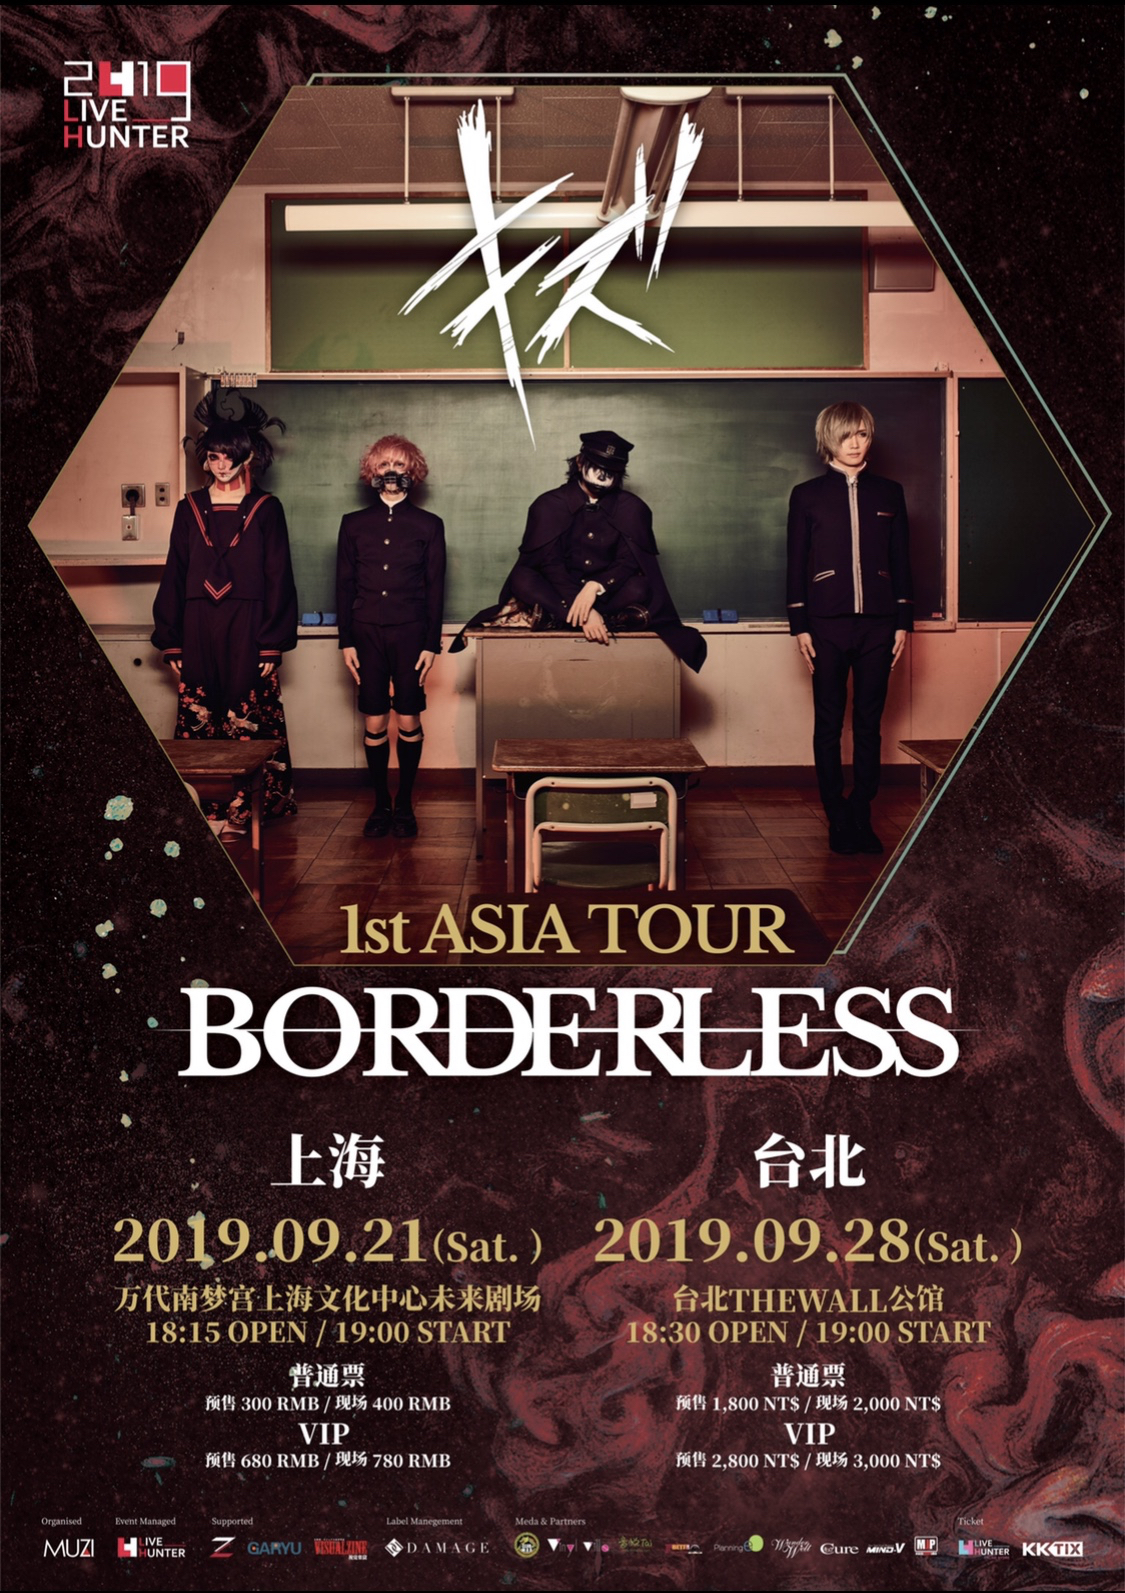 キズ 1st ASIA TOUR 『BORDERLESS』